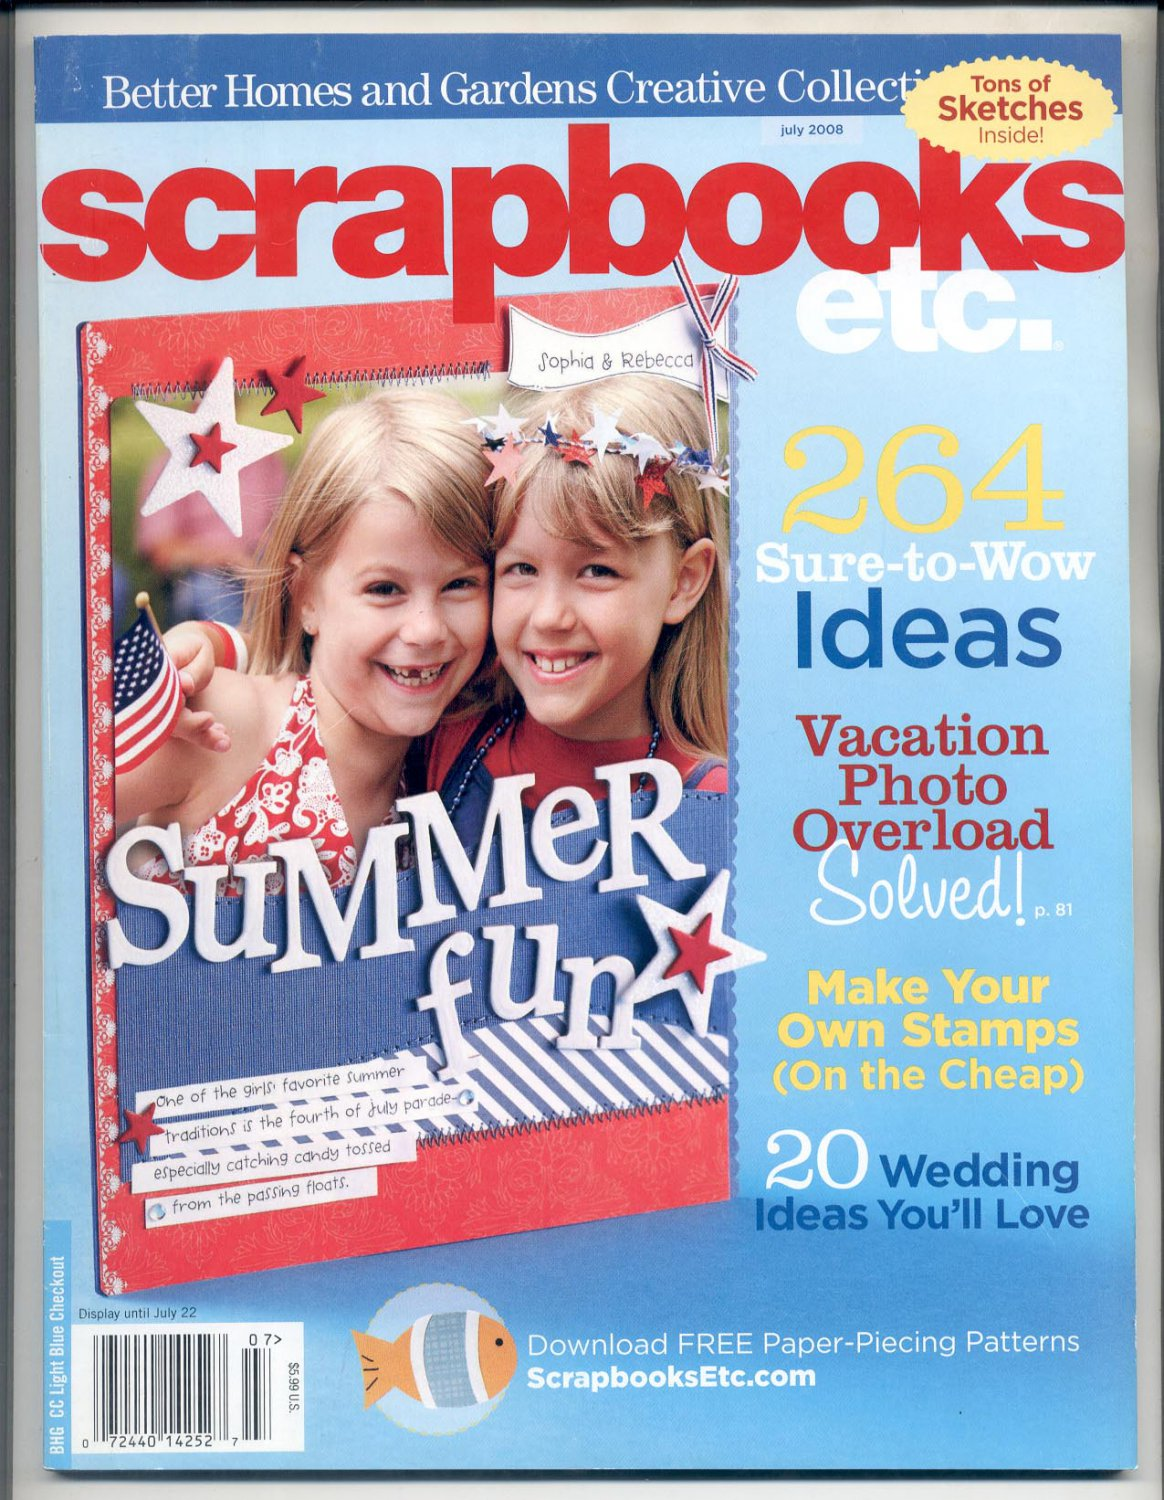 Better Homes Gardens Scrapbooks Etc Back Issue Magazine